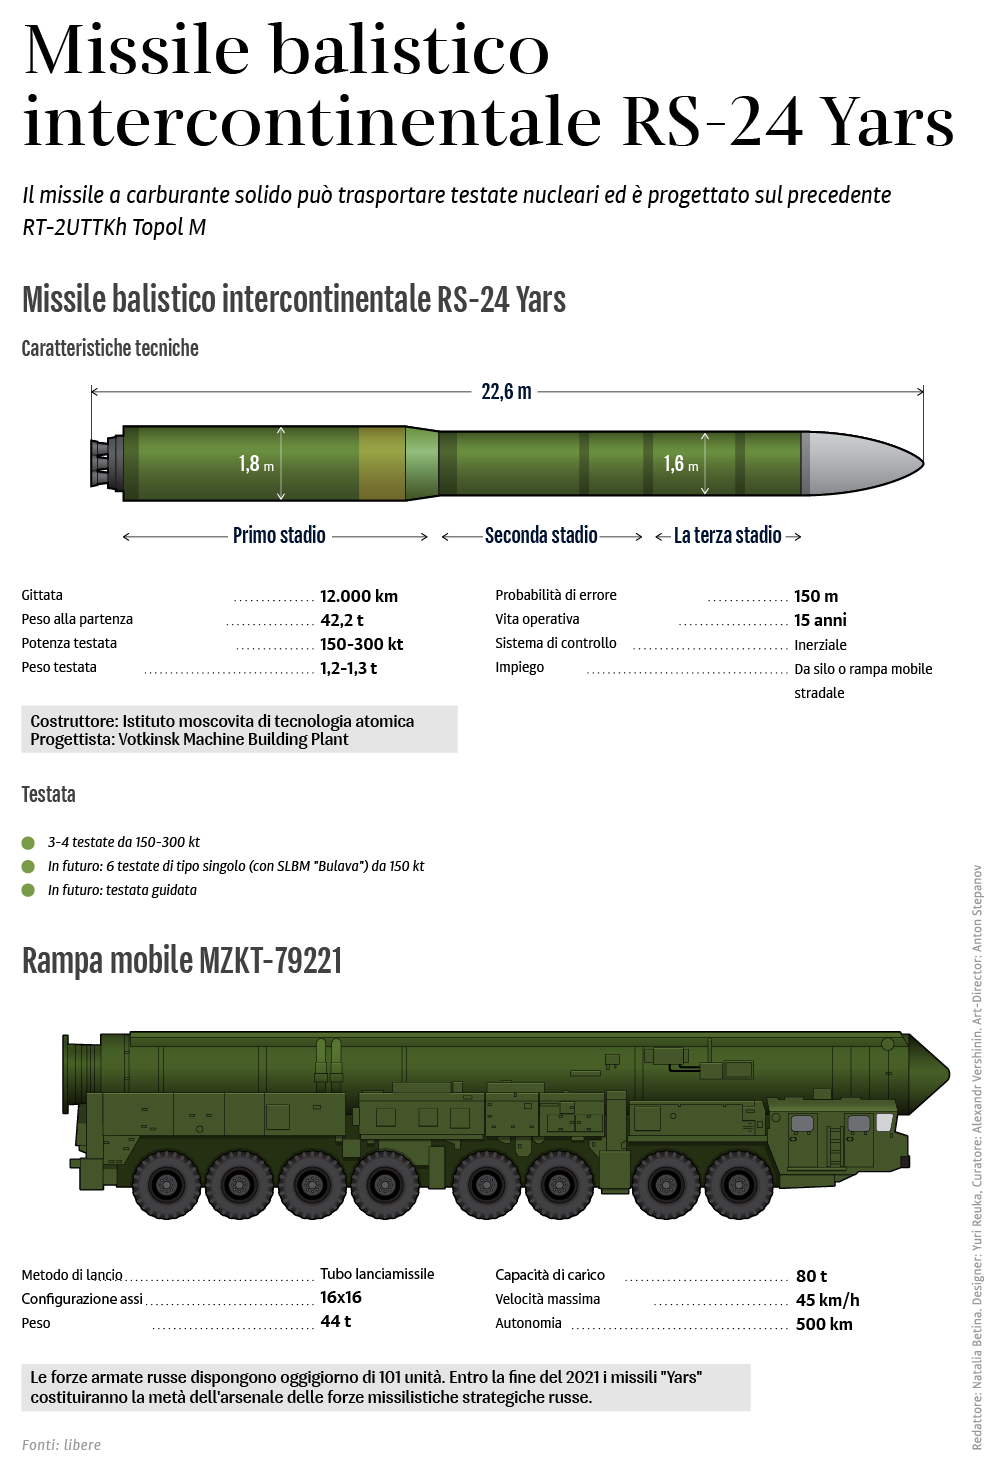 Il missile balistico intercontinentale RS-24 Yars